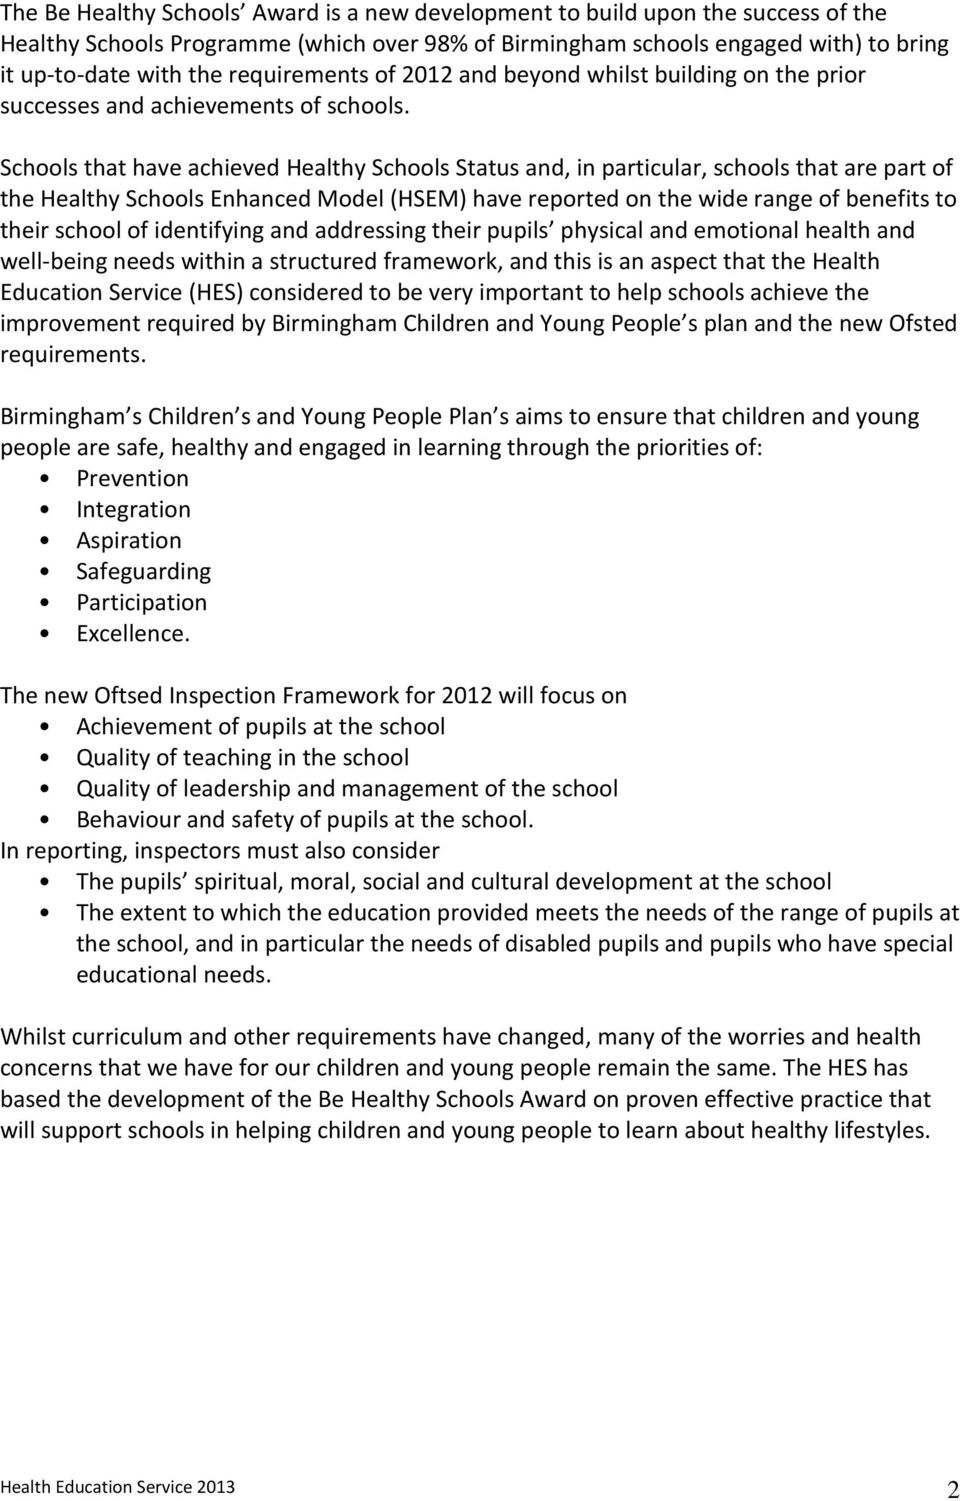 Schools that have achieved Healthy Schools Status and, in particular, schools that are part of the Healthy Schools Enhanced Model (HSEM) have reported on the wide range of benefits to their school of